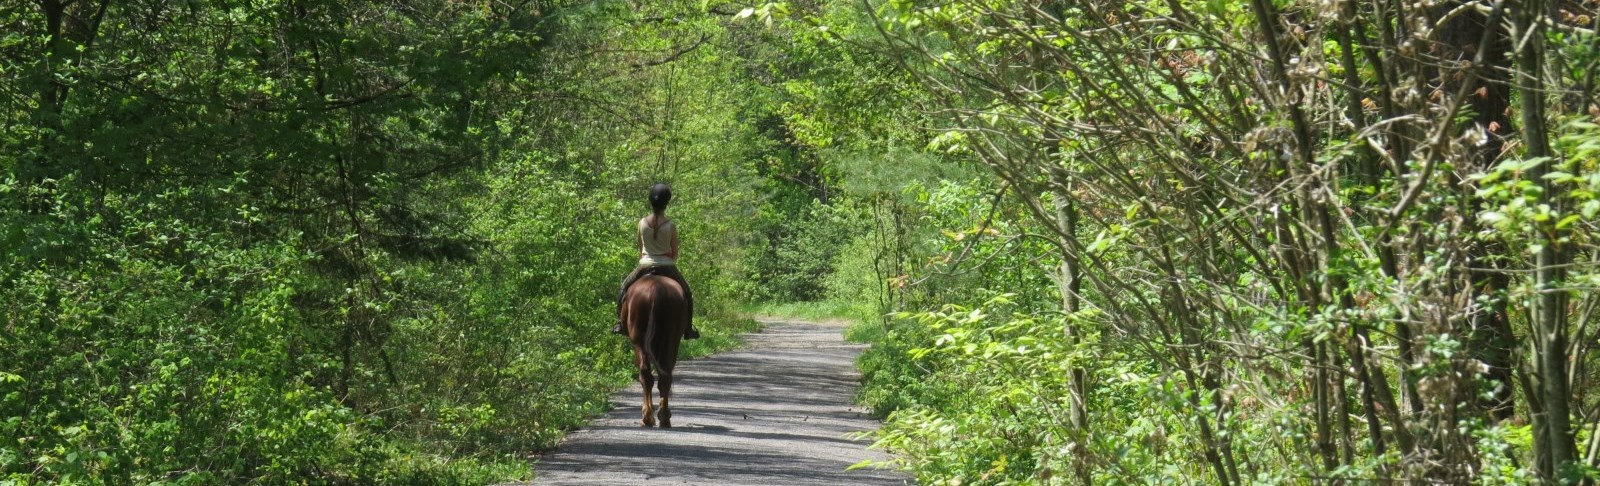 Horseback riding on forest trails